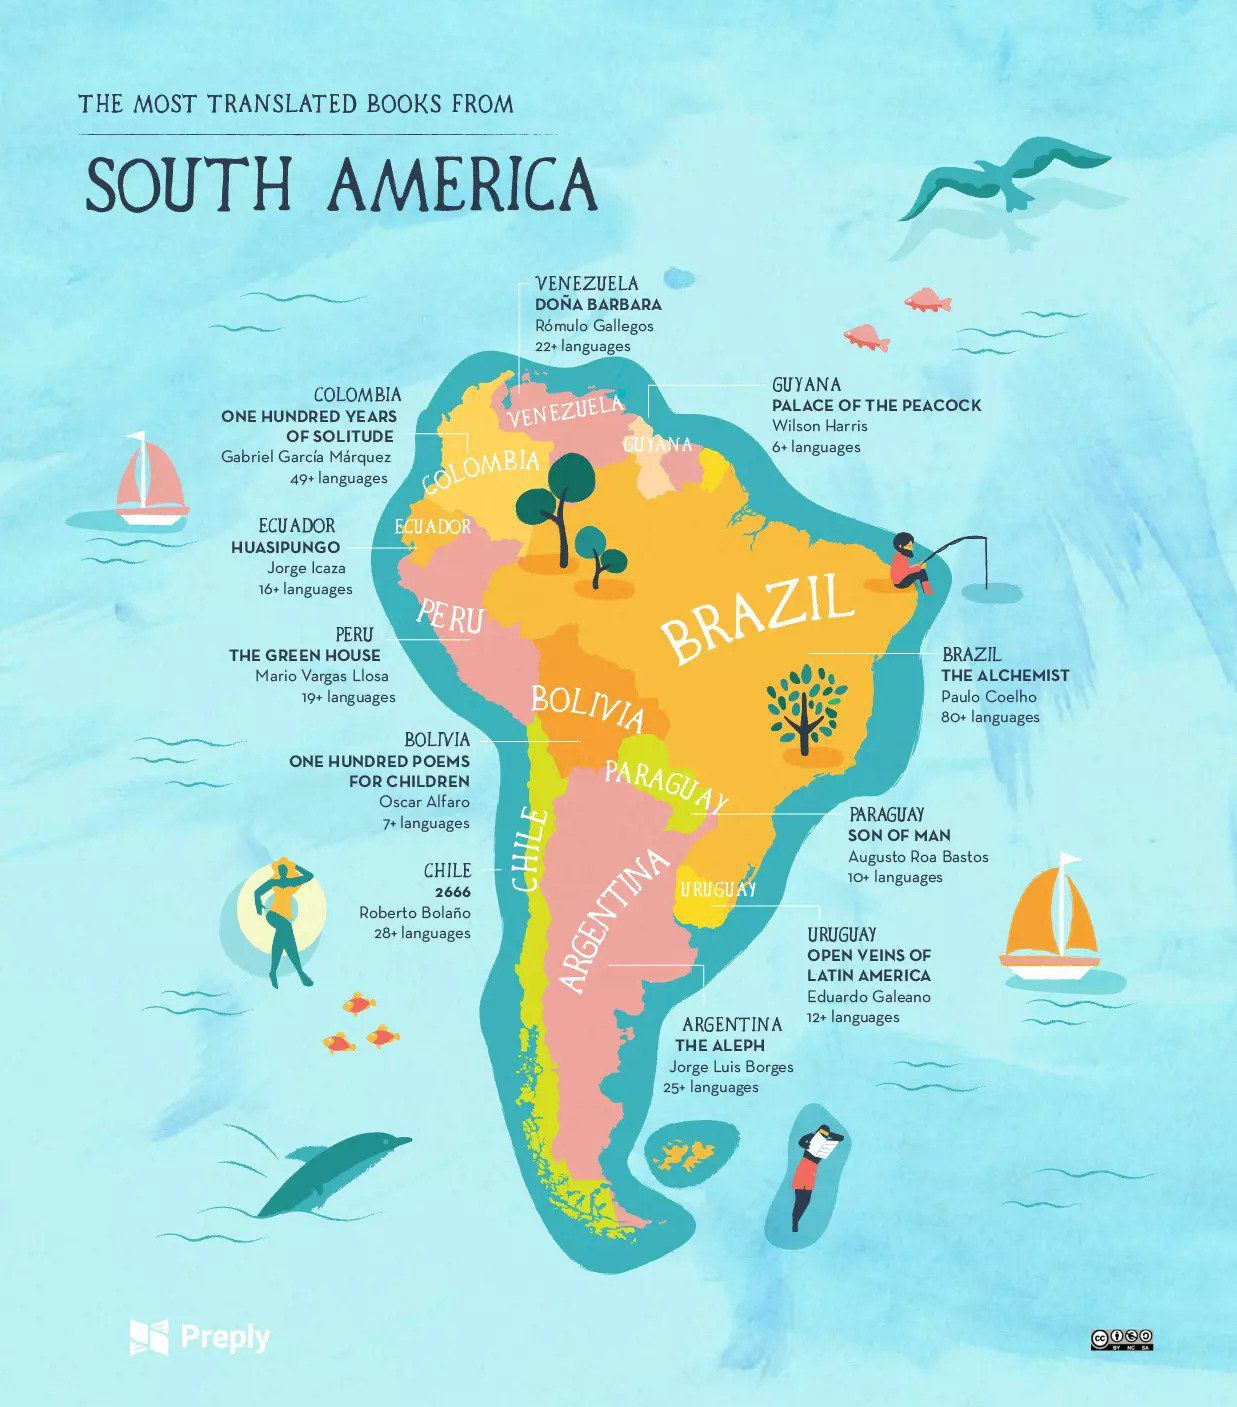 The most translated books from South America map